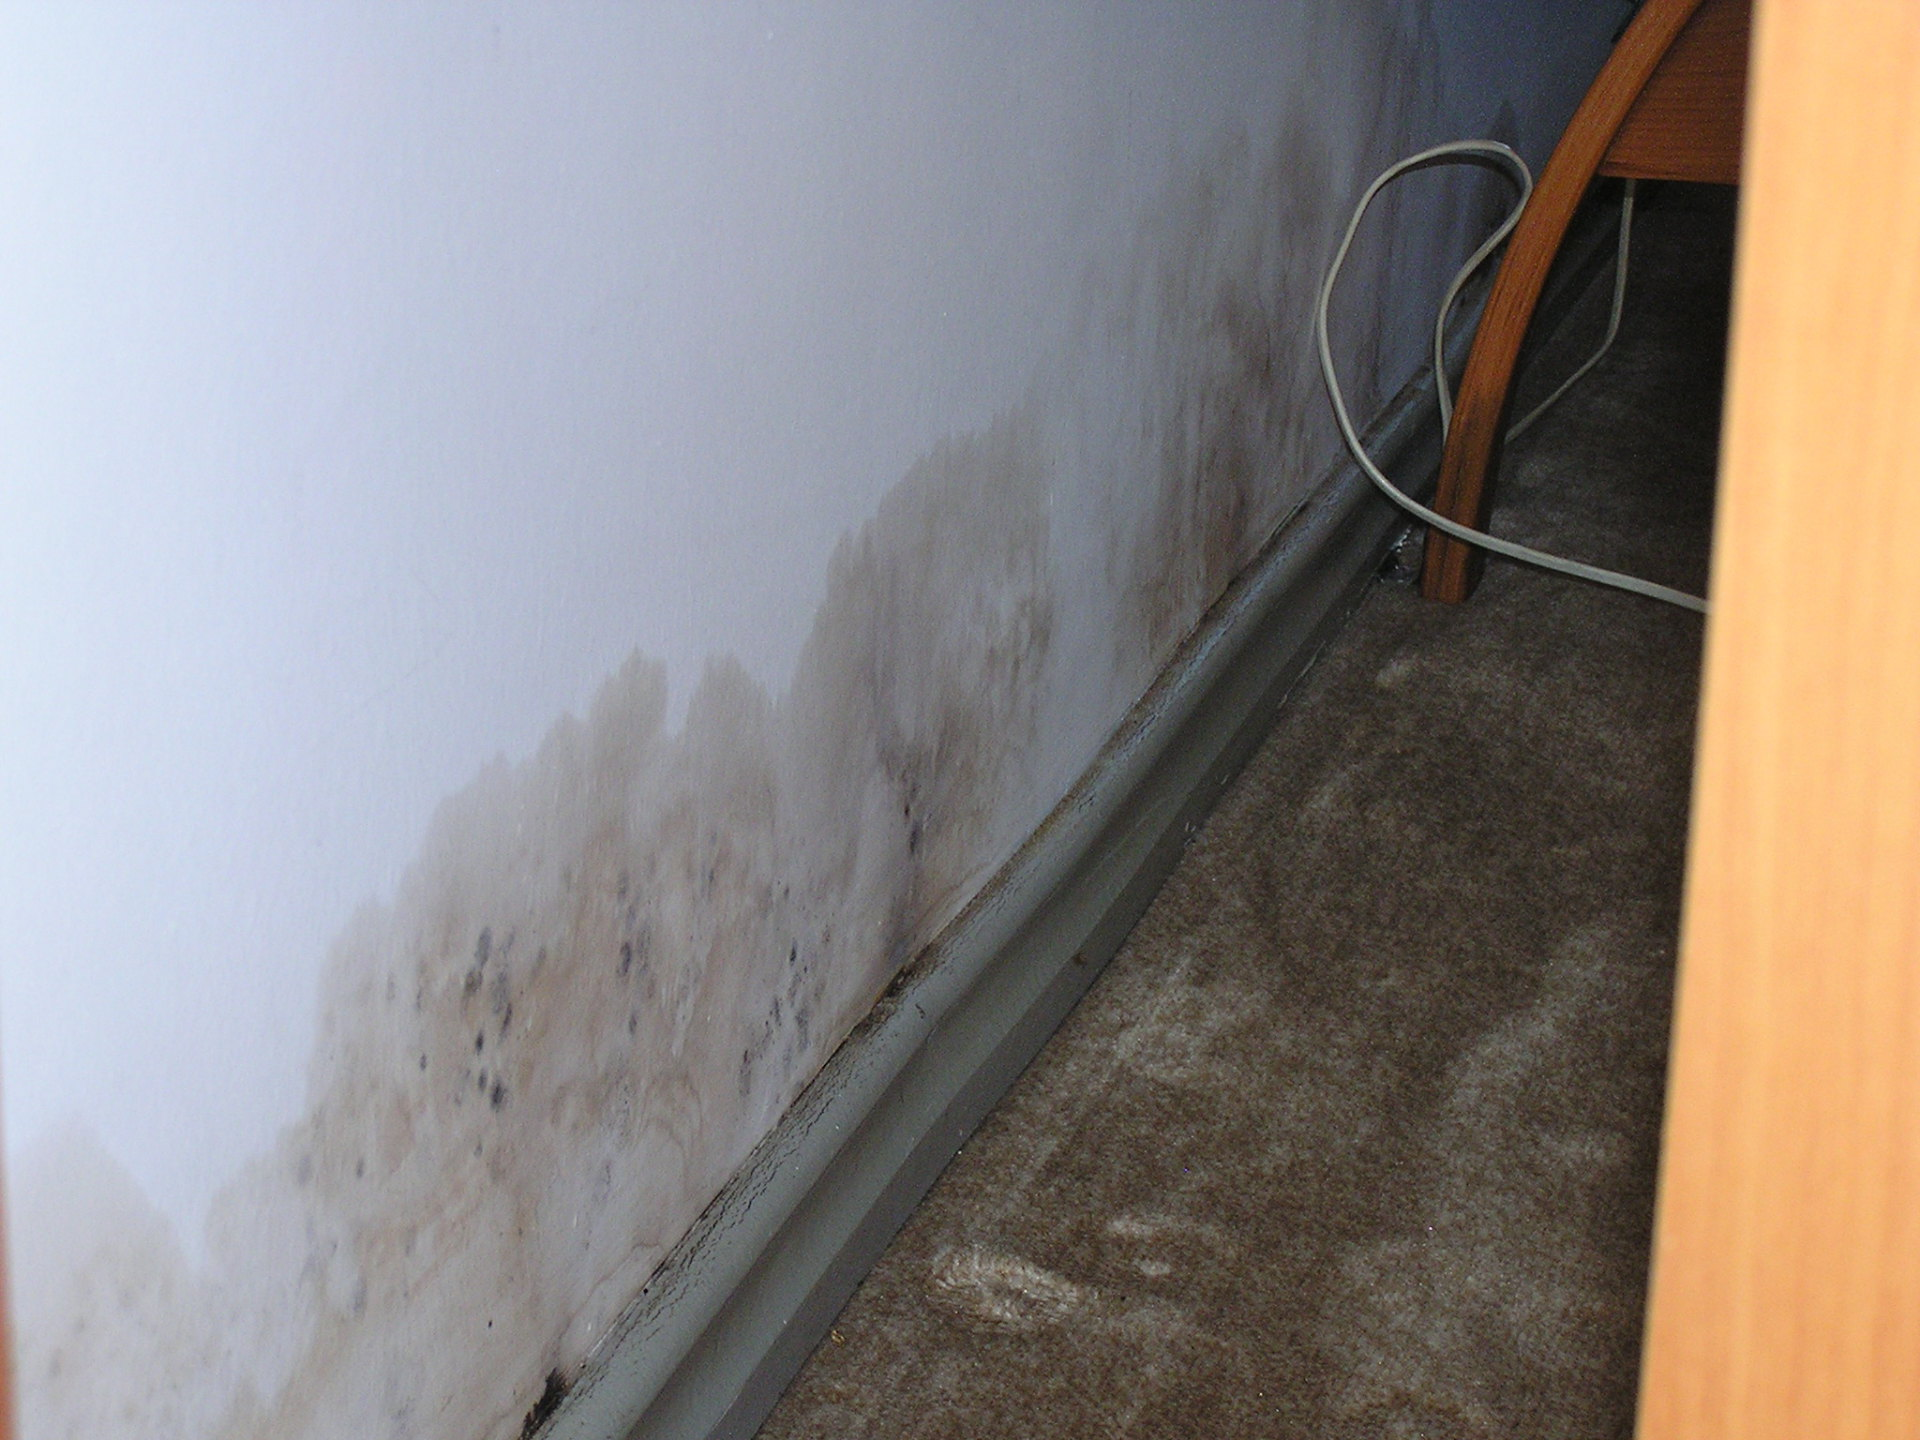 I was appalled to discover moldy walls in my lojman at Koç. Istanbul, Turkey: chapter 39, You must only to love them. http://mershon.wordpress.com